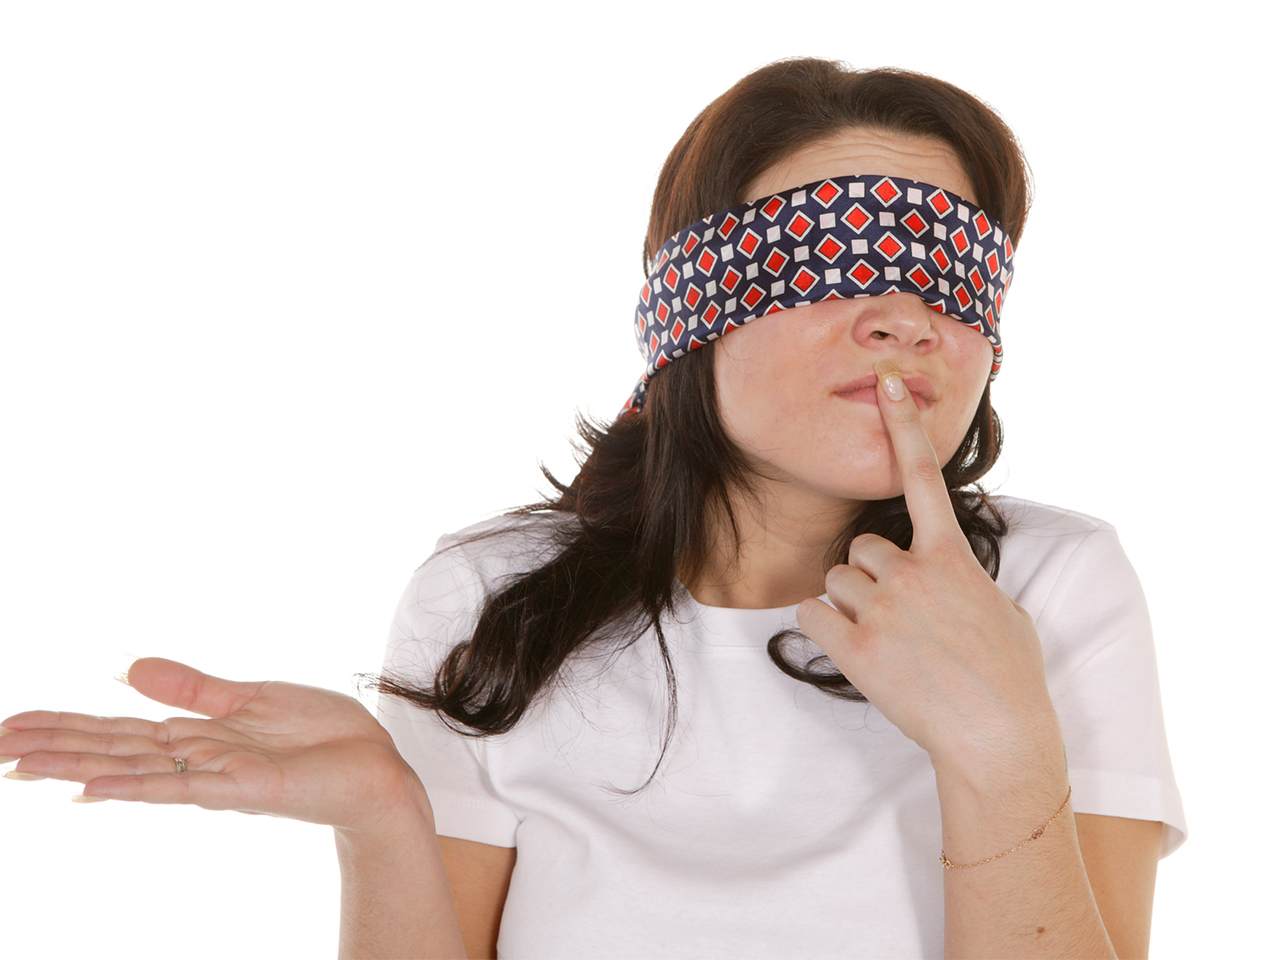 Woman wearing a blindfold holds out her hand